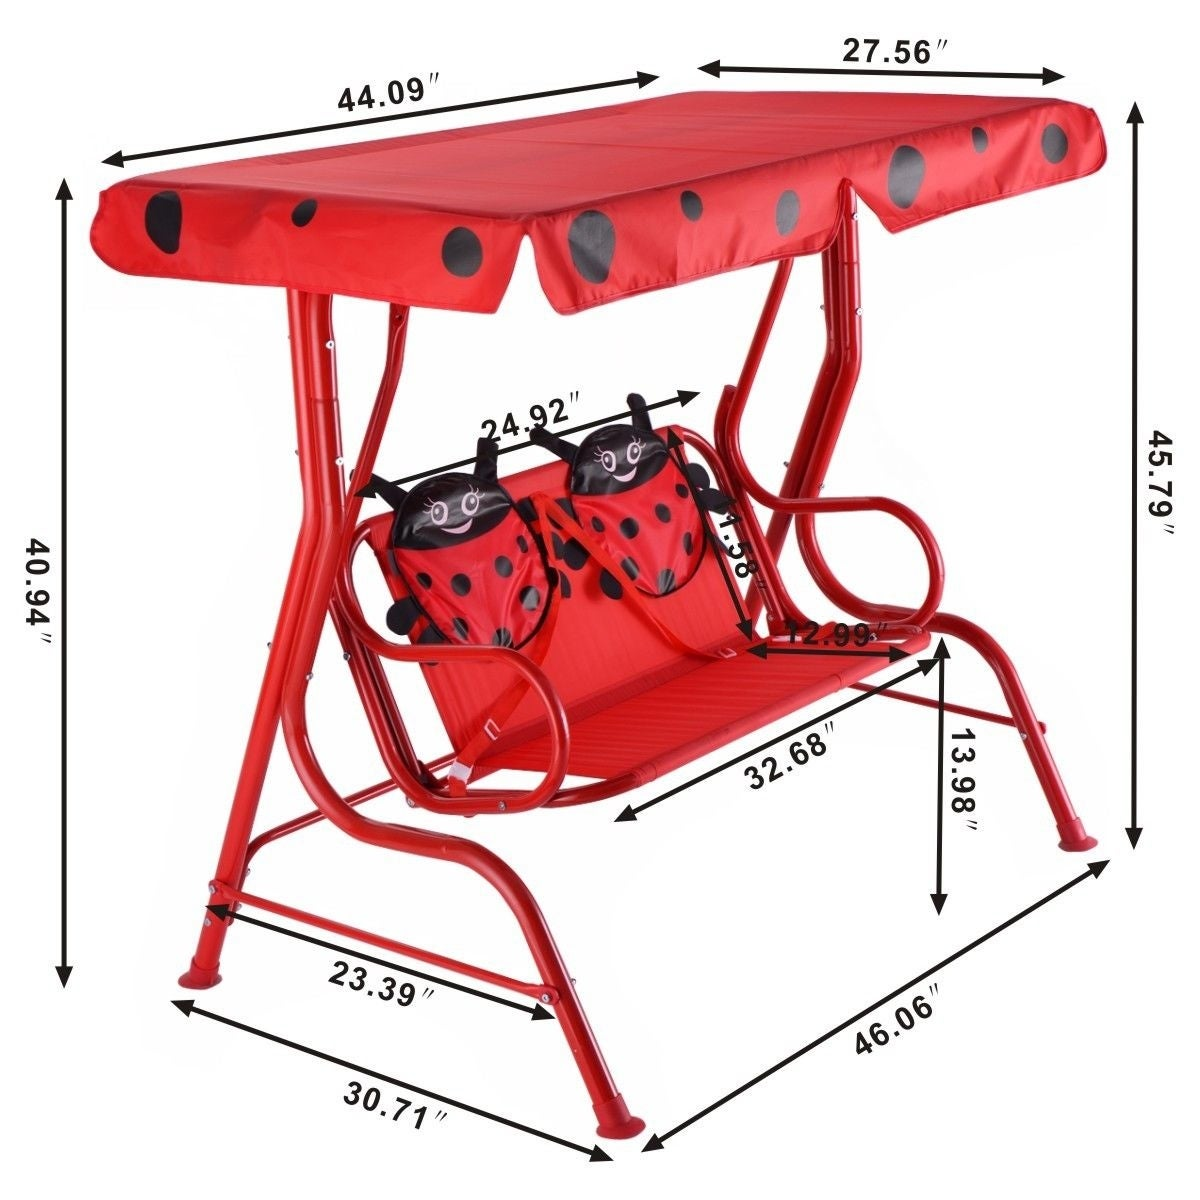 Costway Kids Patio Swing Chair Children Porch Bench Canopy 2 Person Yard  Furniture Red   Free Shipping Today   Overstock   23046320